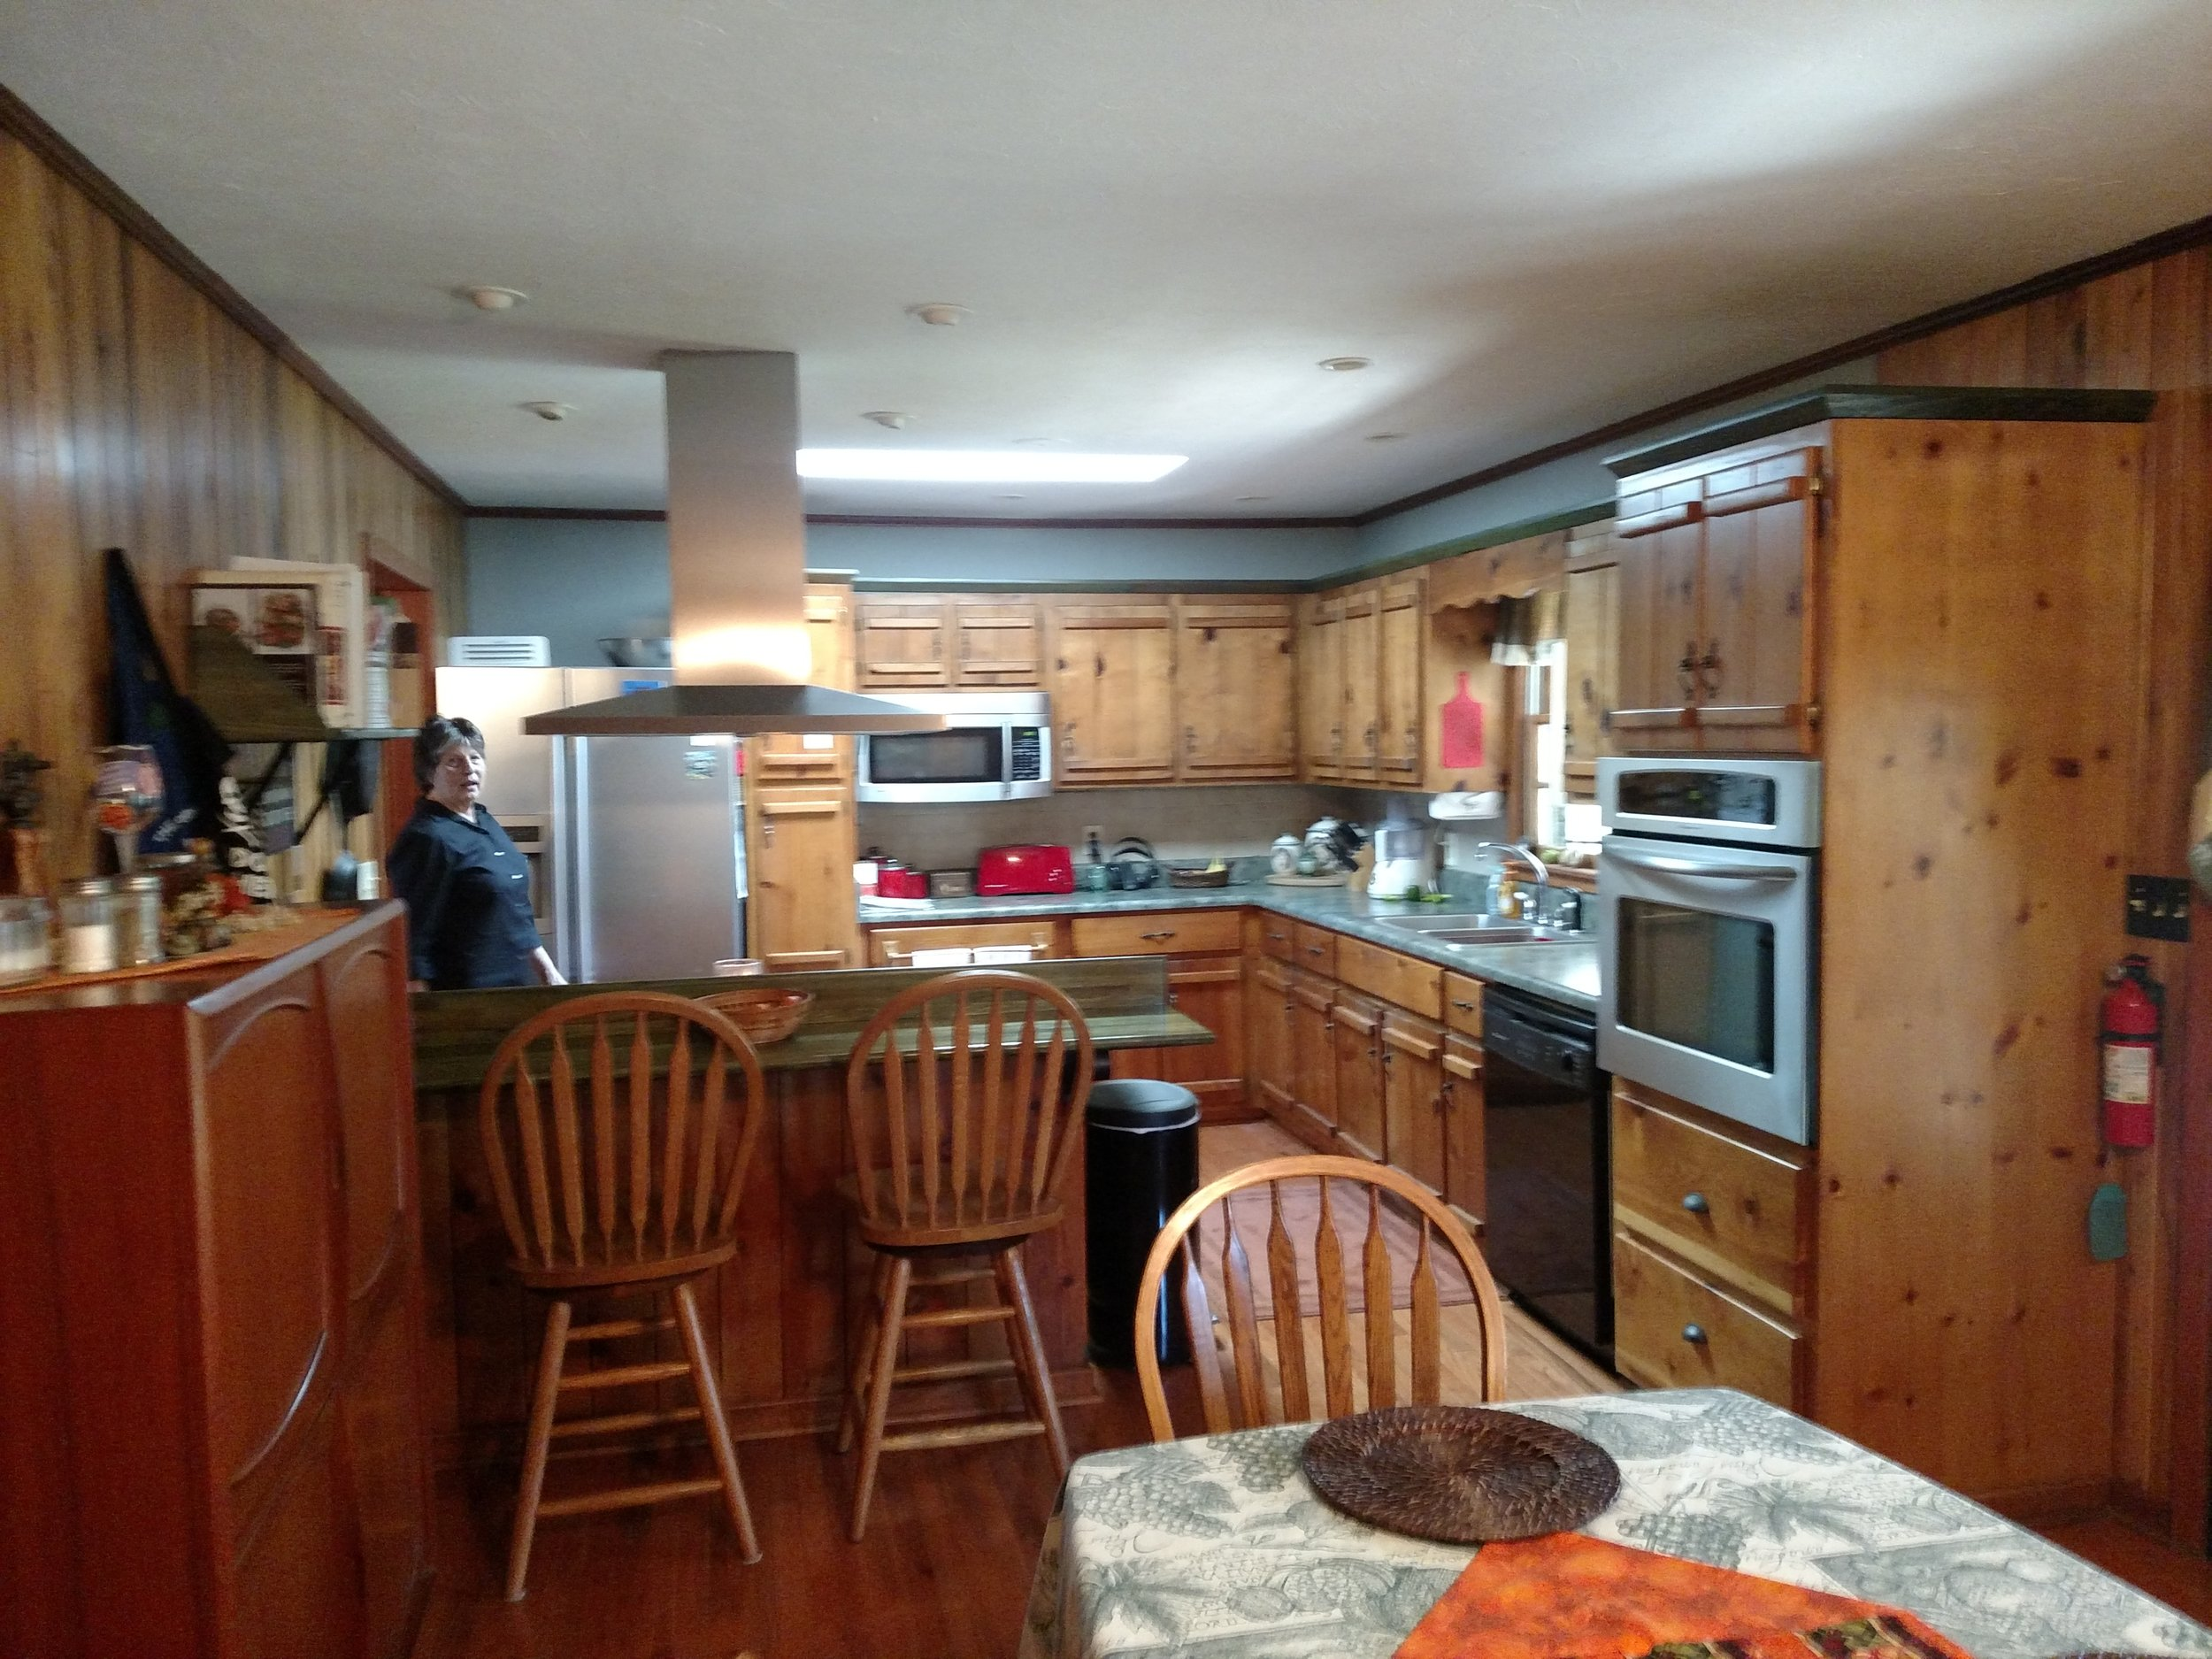 6 DINING ROOM VIEW TO KITCHEN.jpg